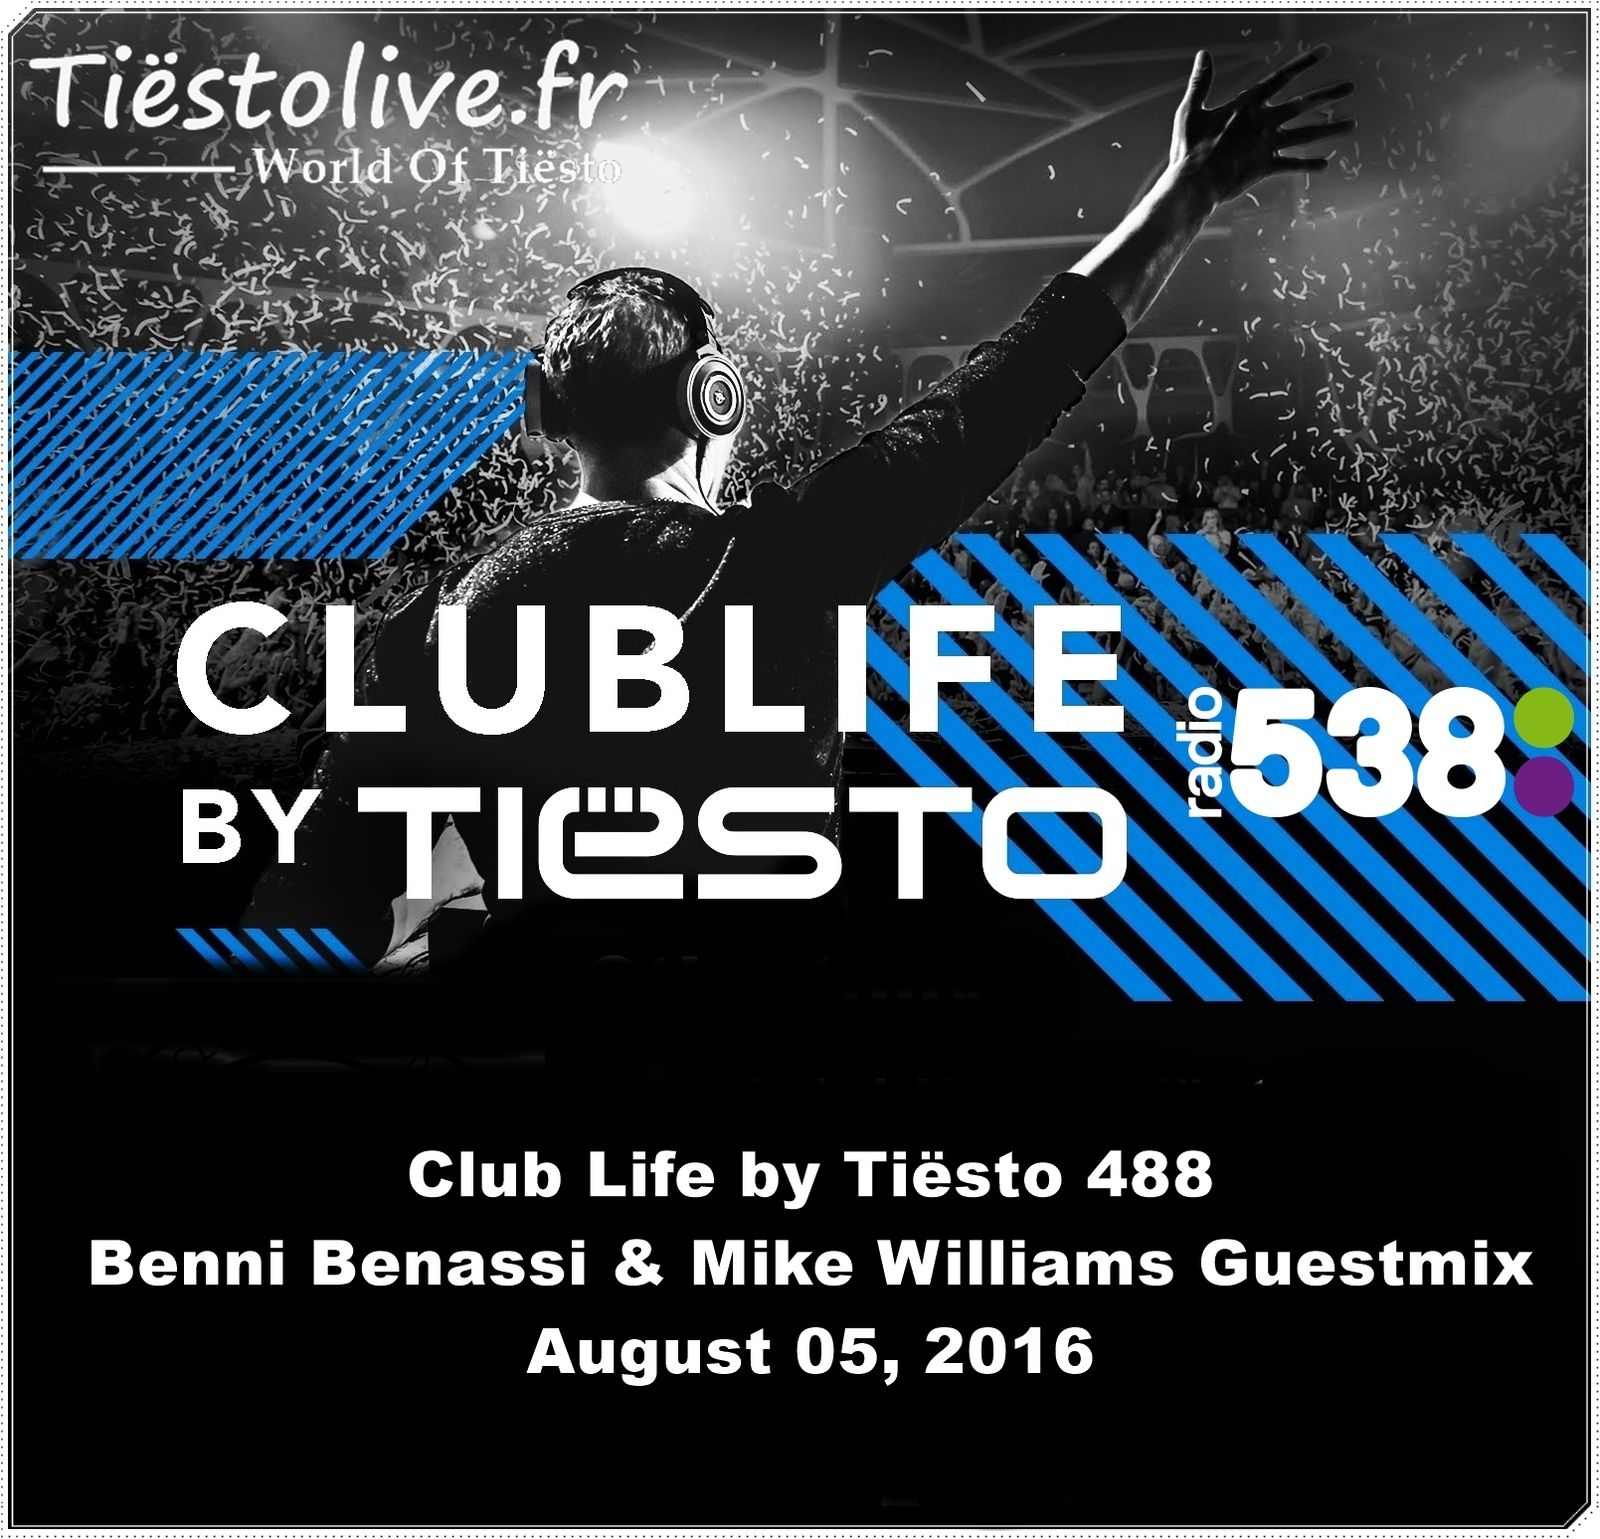 Club Life by Tiësto 488 - Benni Benassi & Mike Williams Guestmix - August 05, 2016